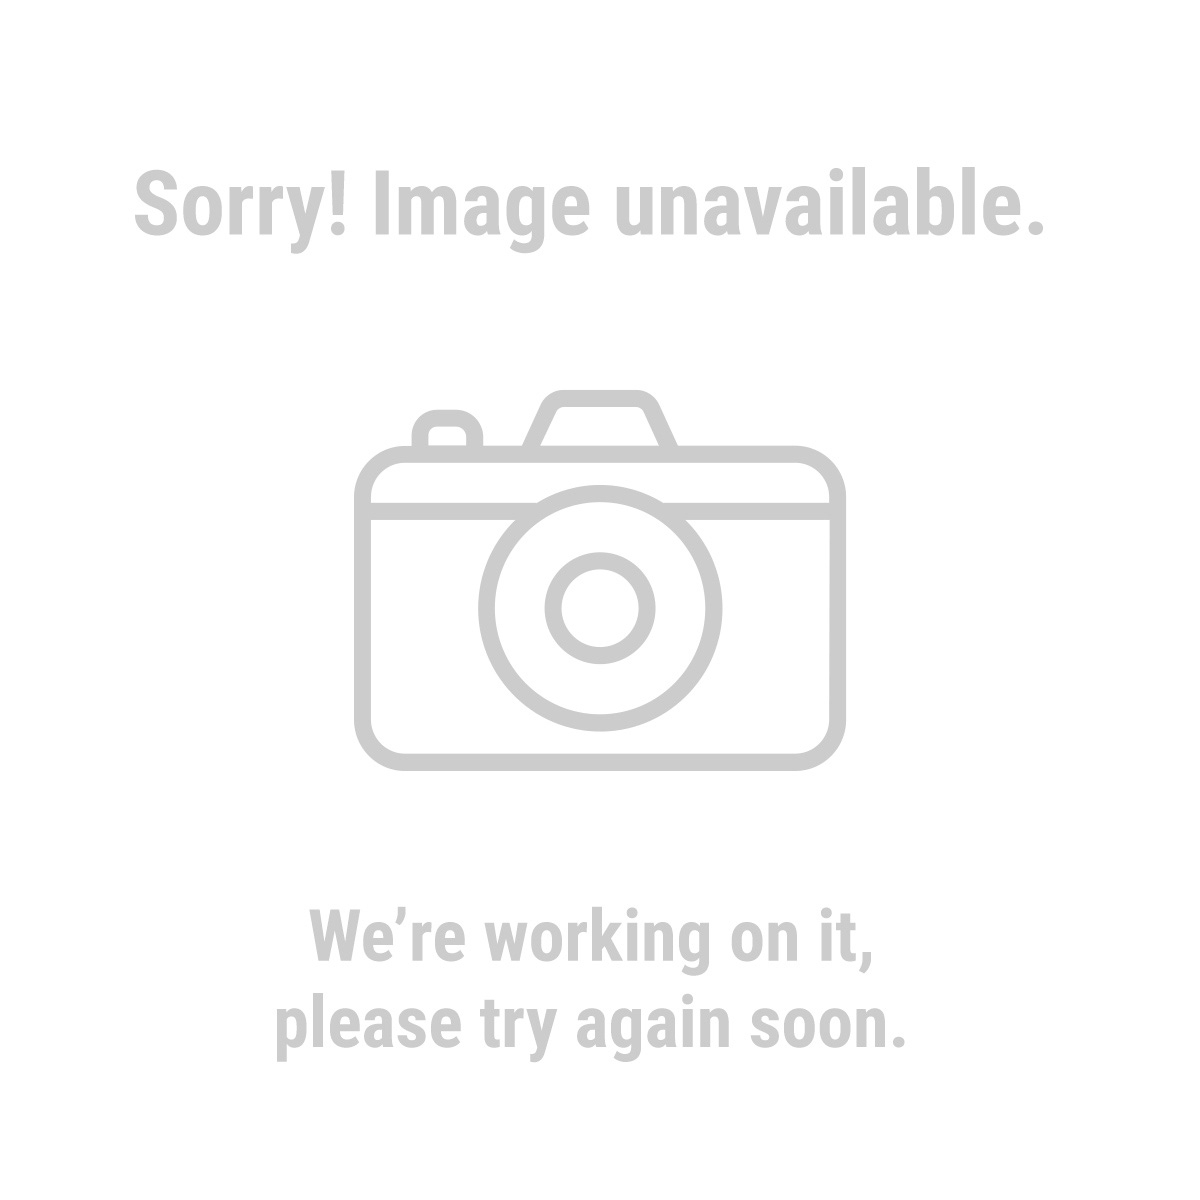 Chicago Electric Power Tools 93687 125 Volt, 15 Amp Female Plug Connector